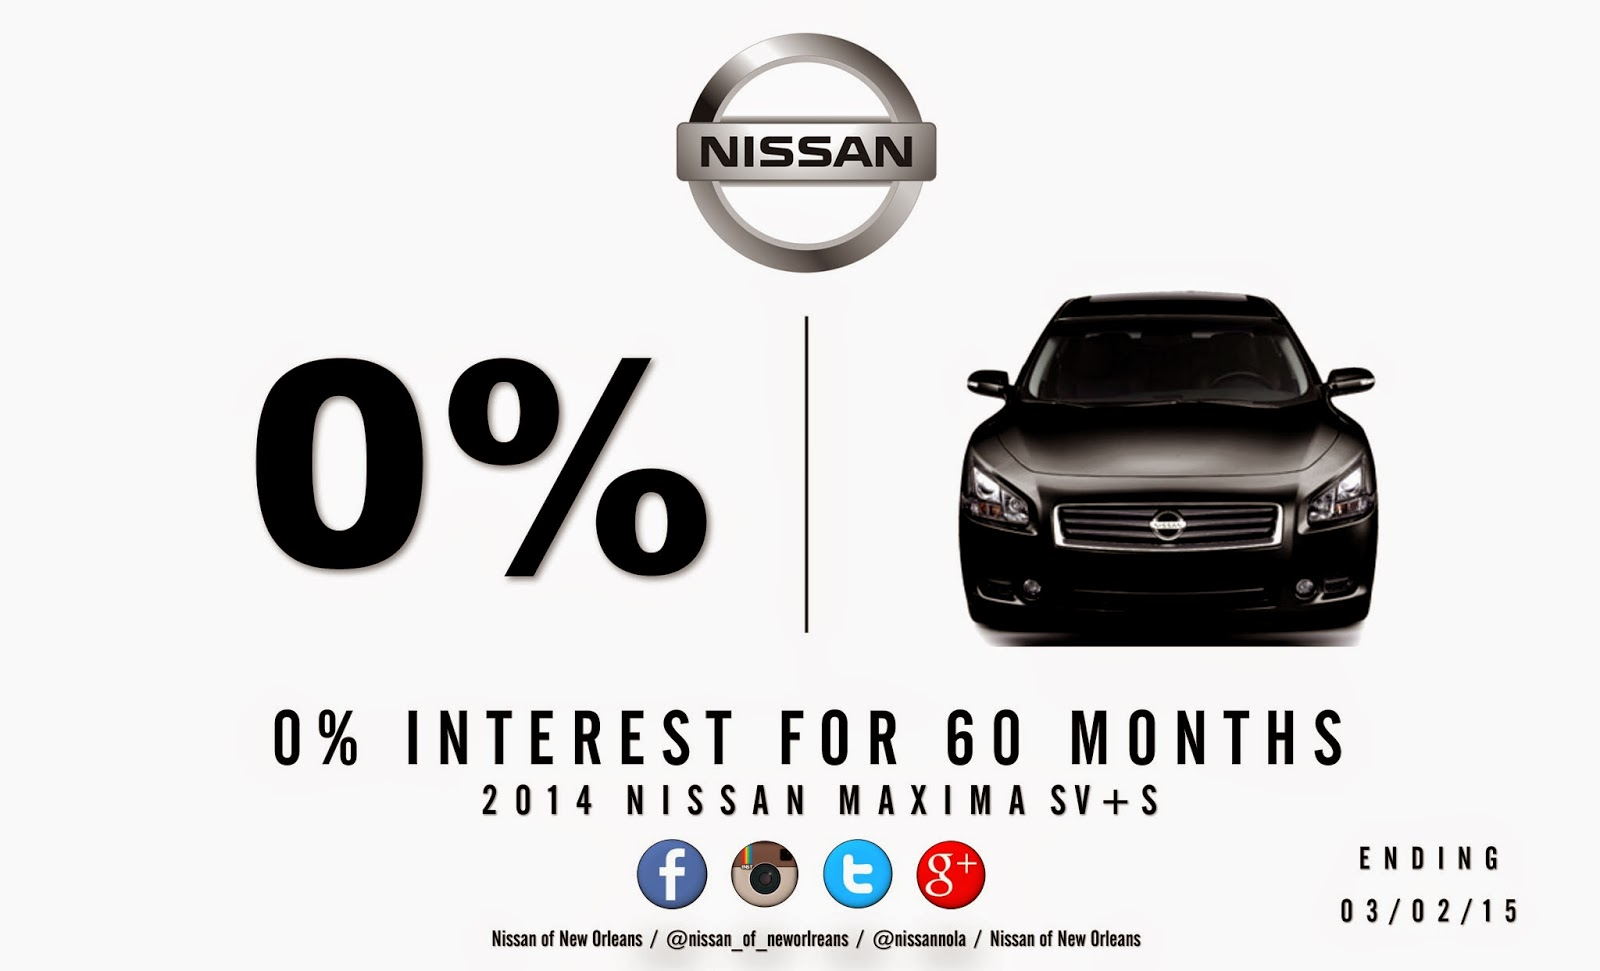 buyers s dealer la of bowers sentra metairie first in time marrero by matt nissan new orleans